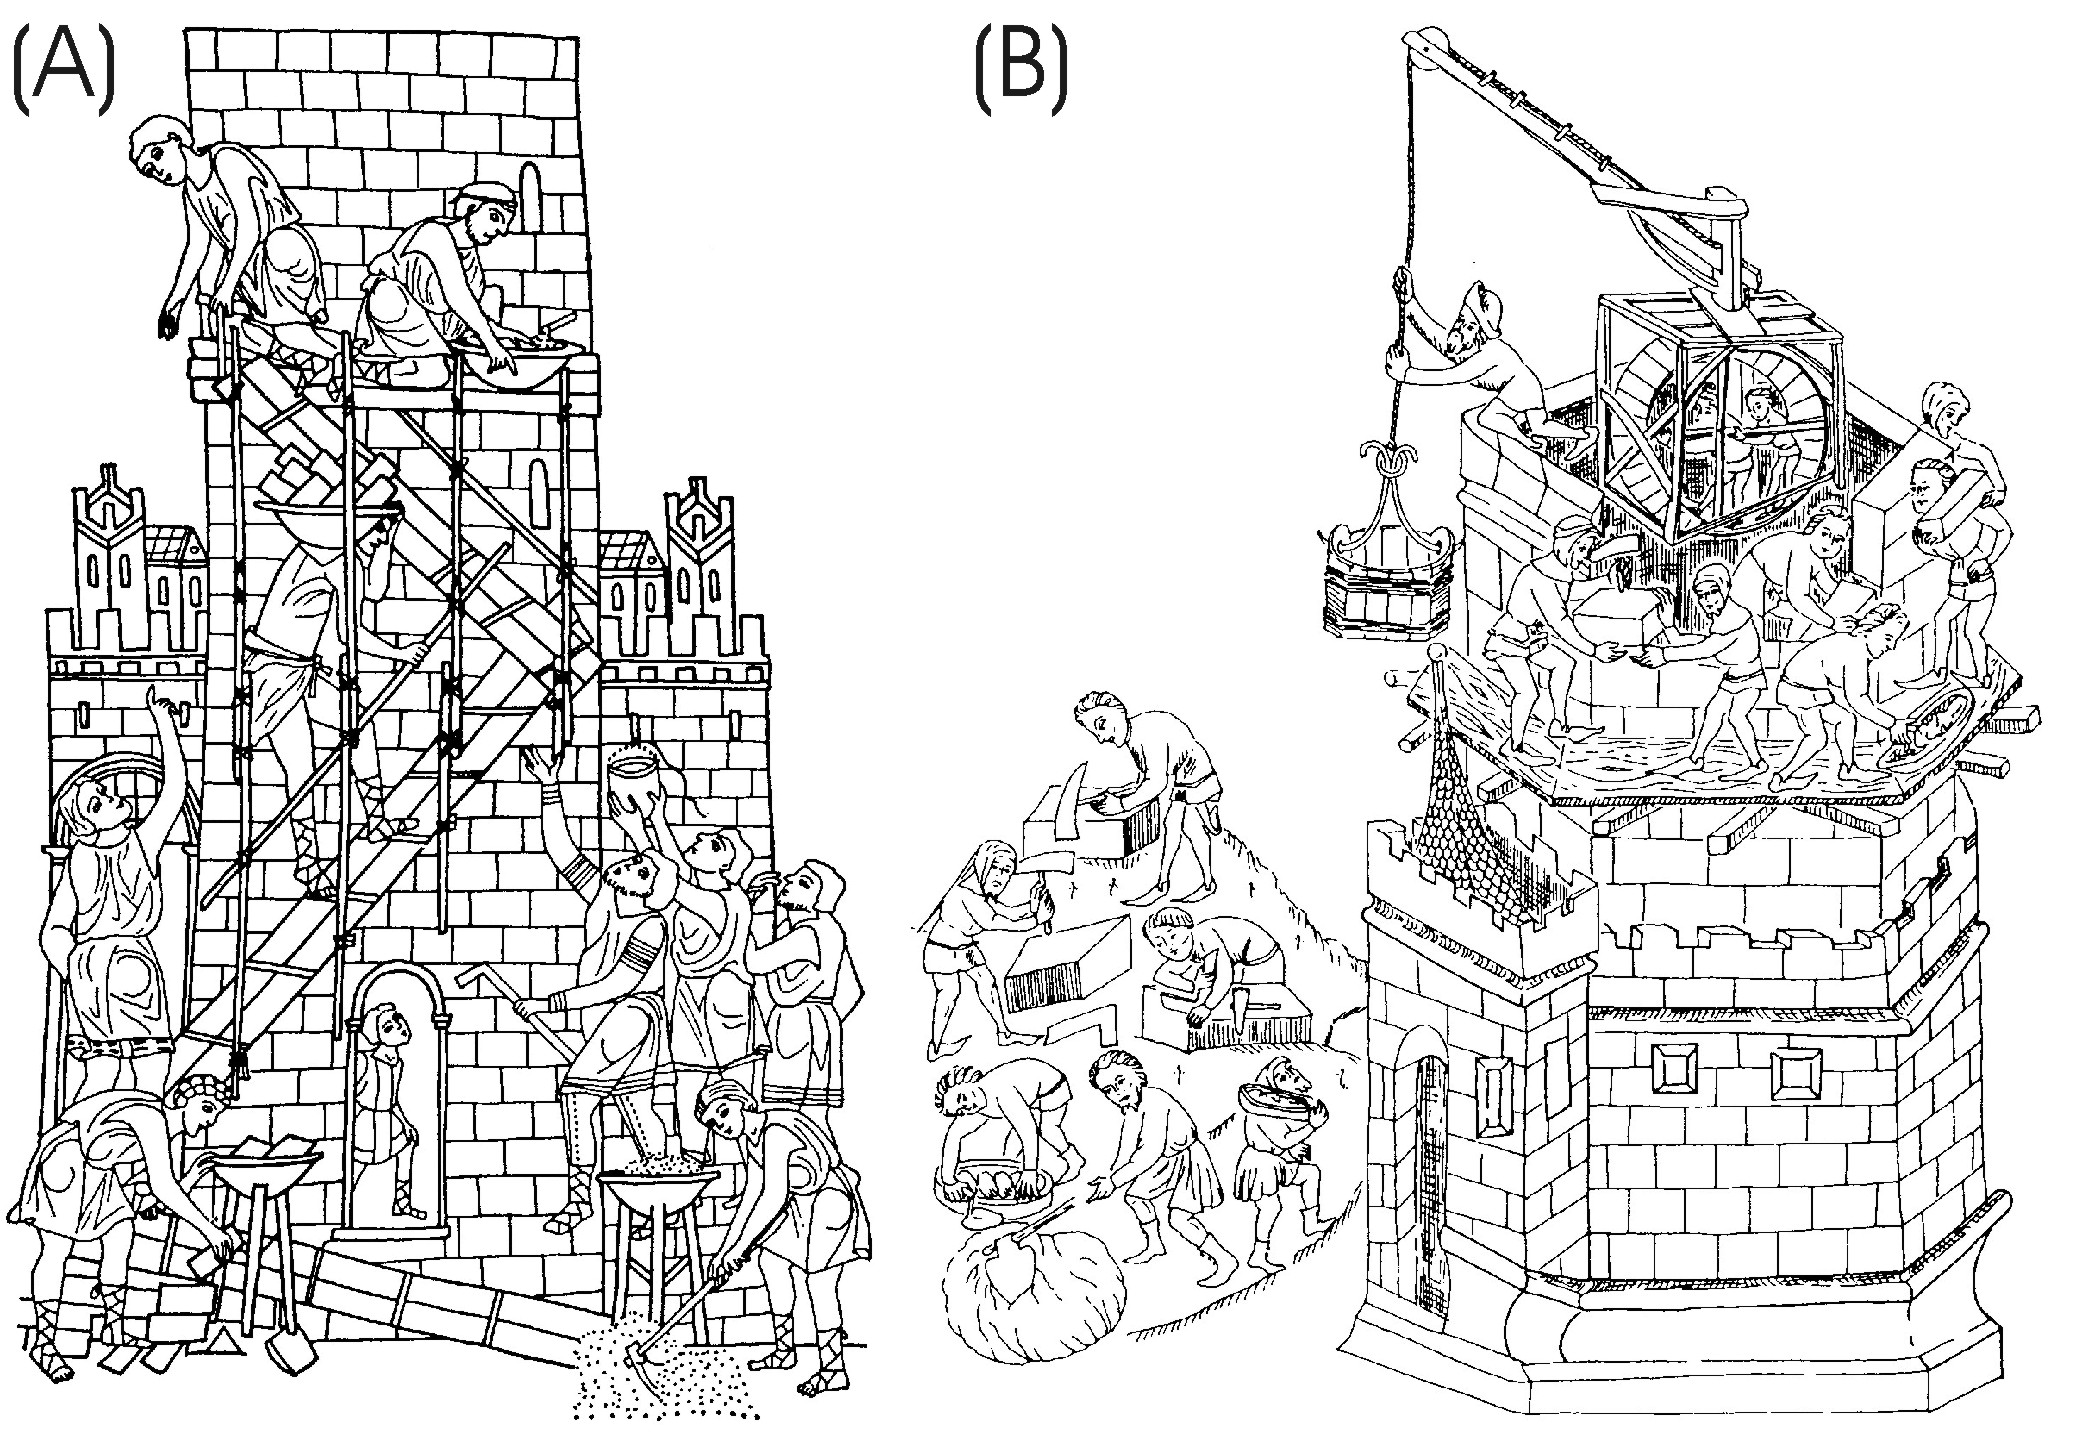 Contribution to the Medieval Building Technology Based on